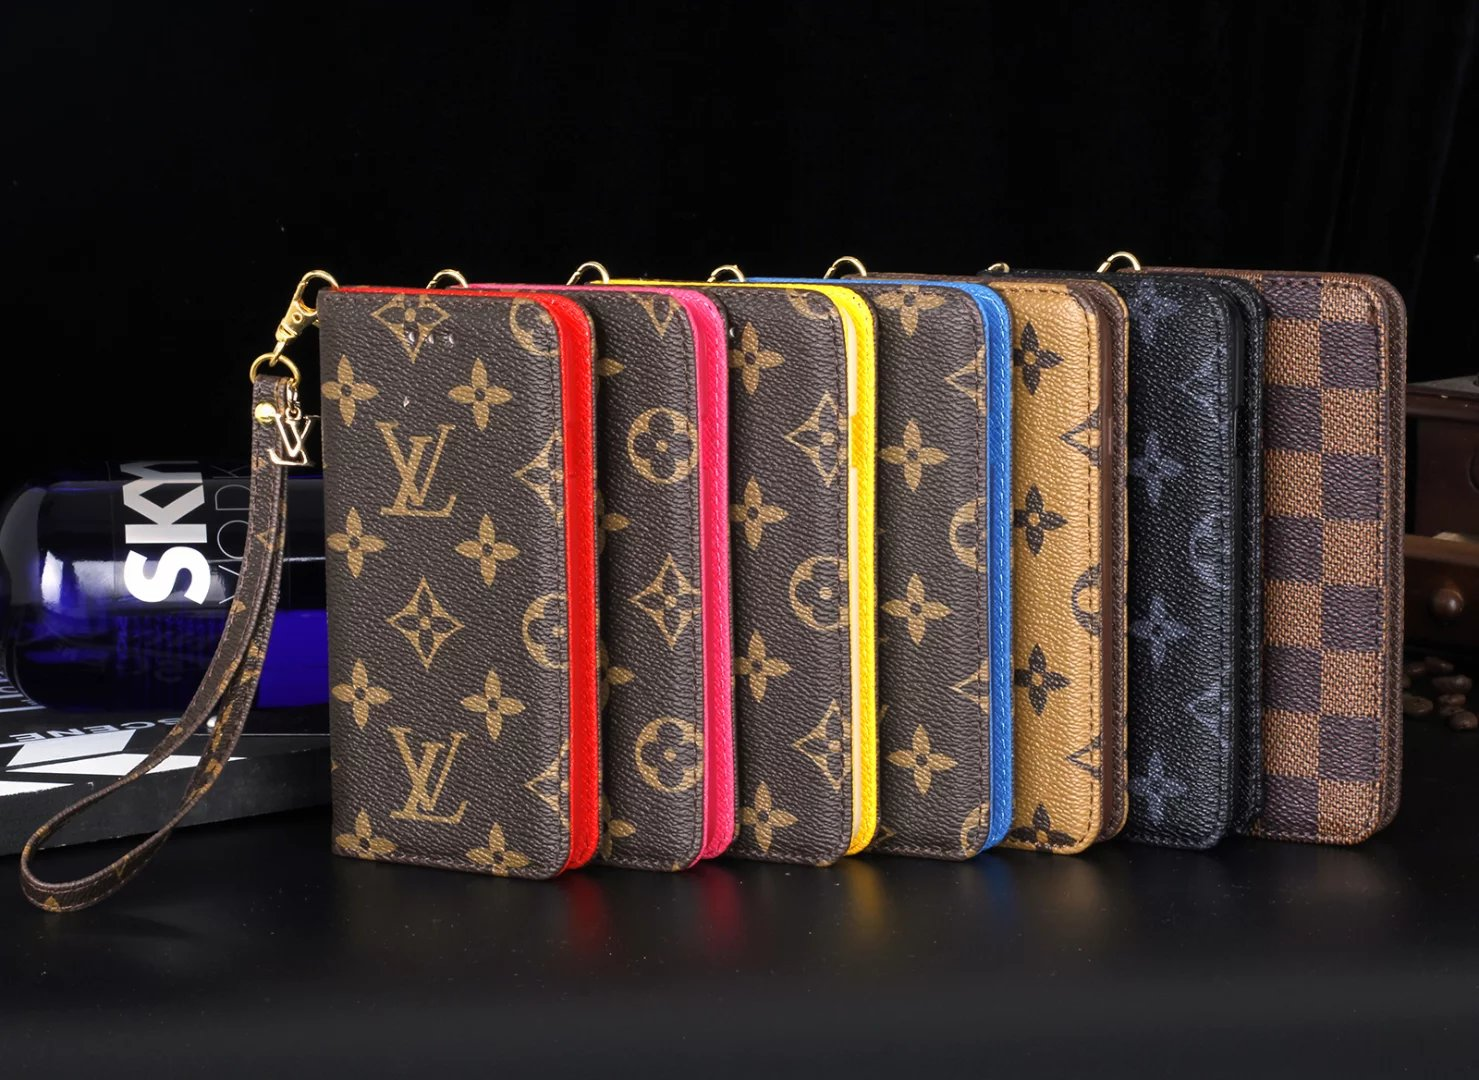 schutzhülle iphone iphone case selber machen Louis Vuitton iphone6s plus hülle iphone 6s Plus displaygröße iphone hülle bunt handyhülle eigenes foto neues iphone wann preisvergleich iphone 6s Plus iphone 6 akku